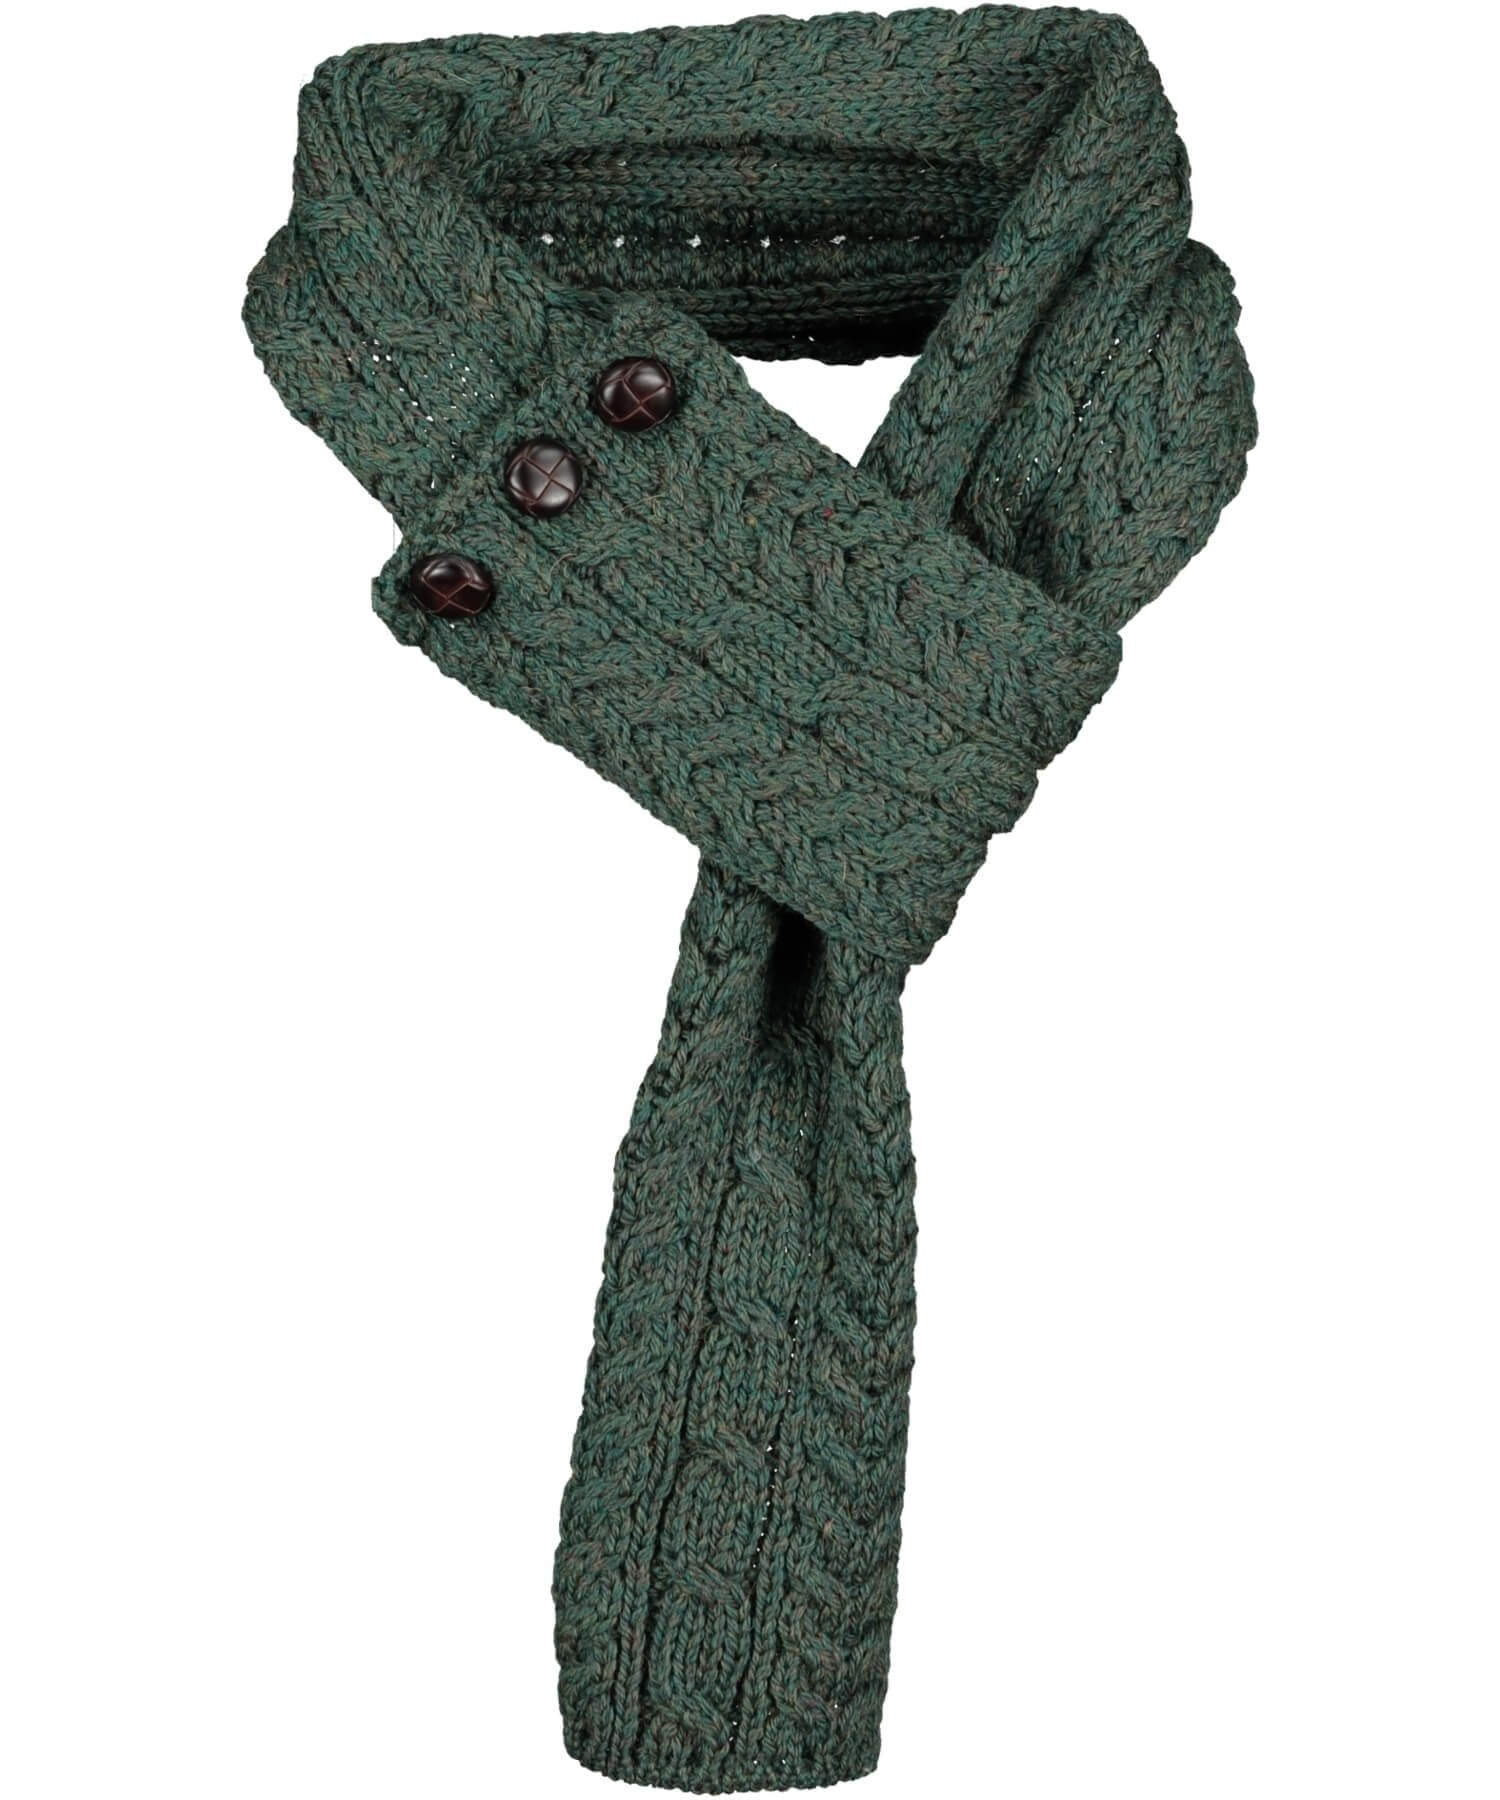 Buttoned Loop Scarf - Connemara Green - [Aran Woollen Mills] - Ladies Scarves & Gloves - Irish Gifts